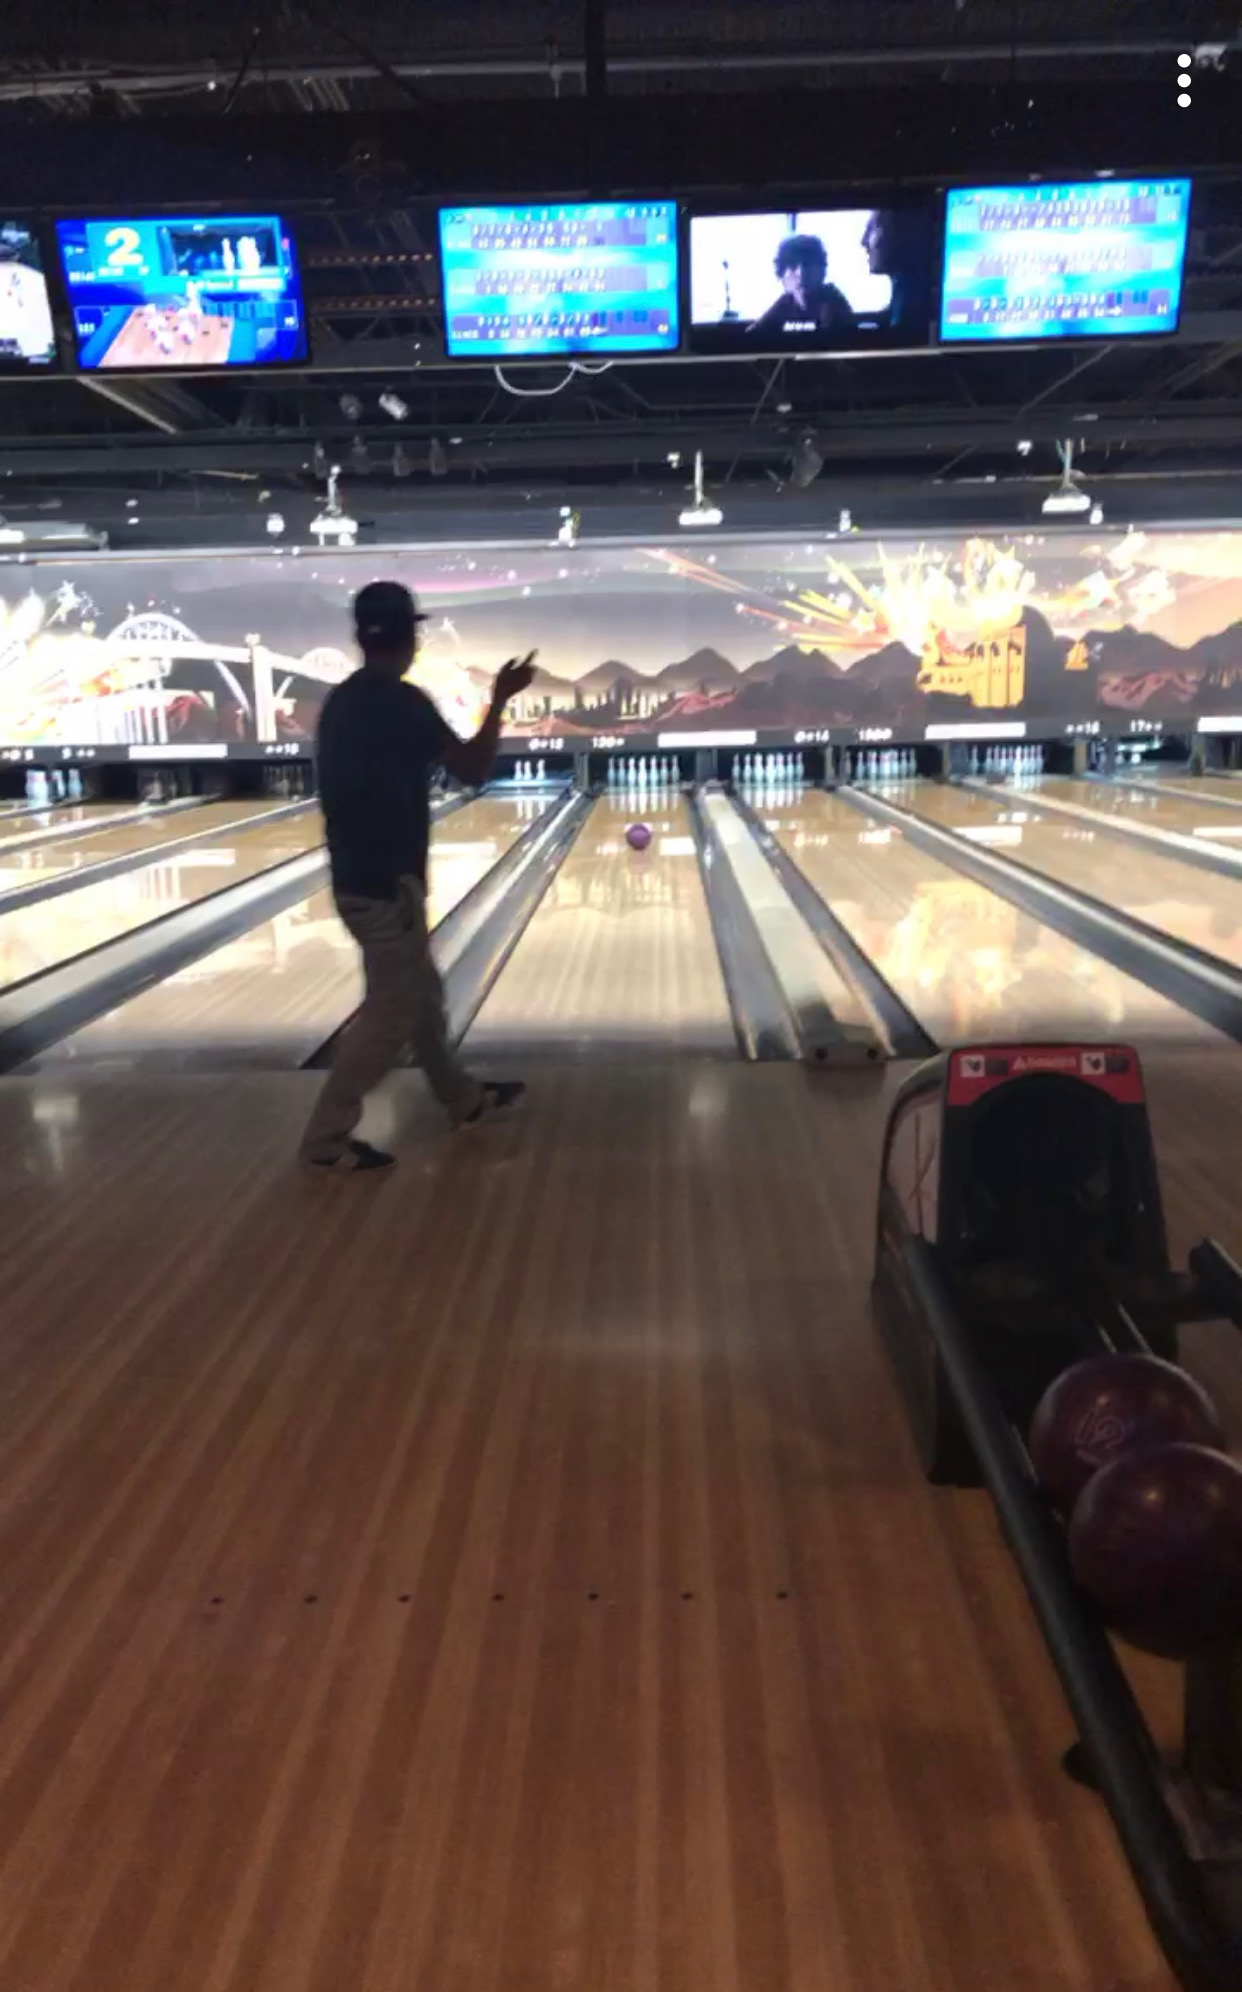 Elmer wins both bowling rounds.